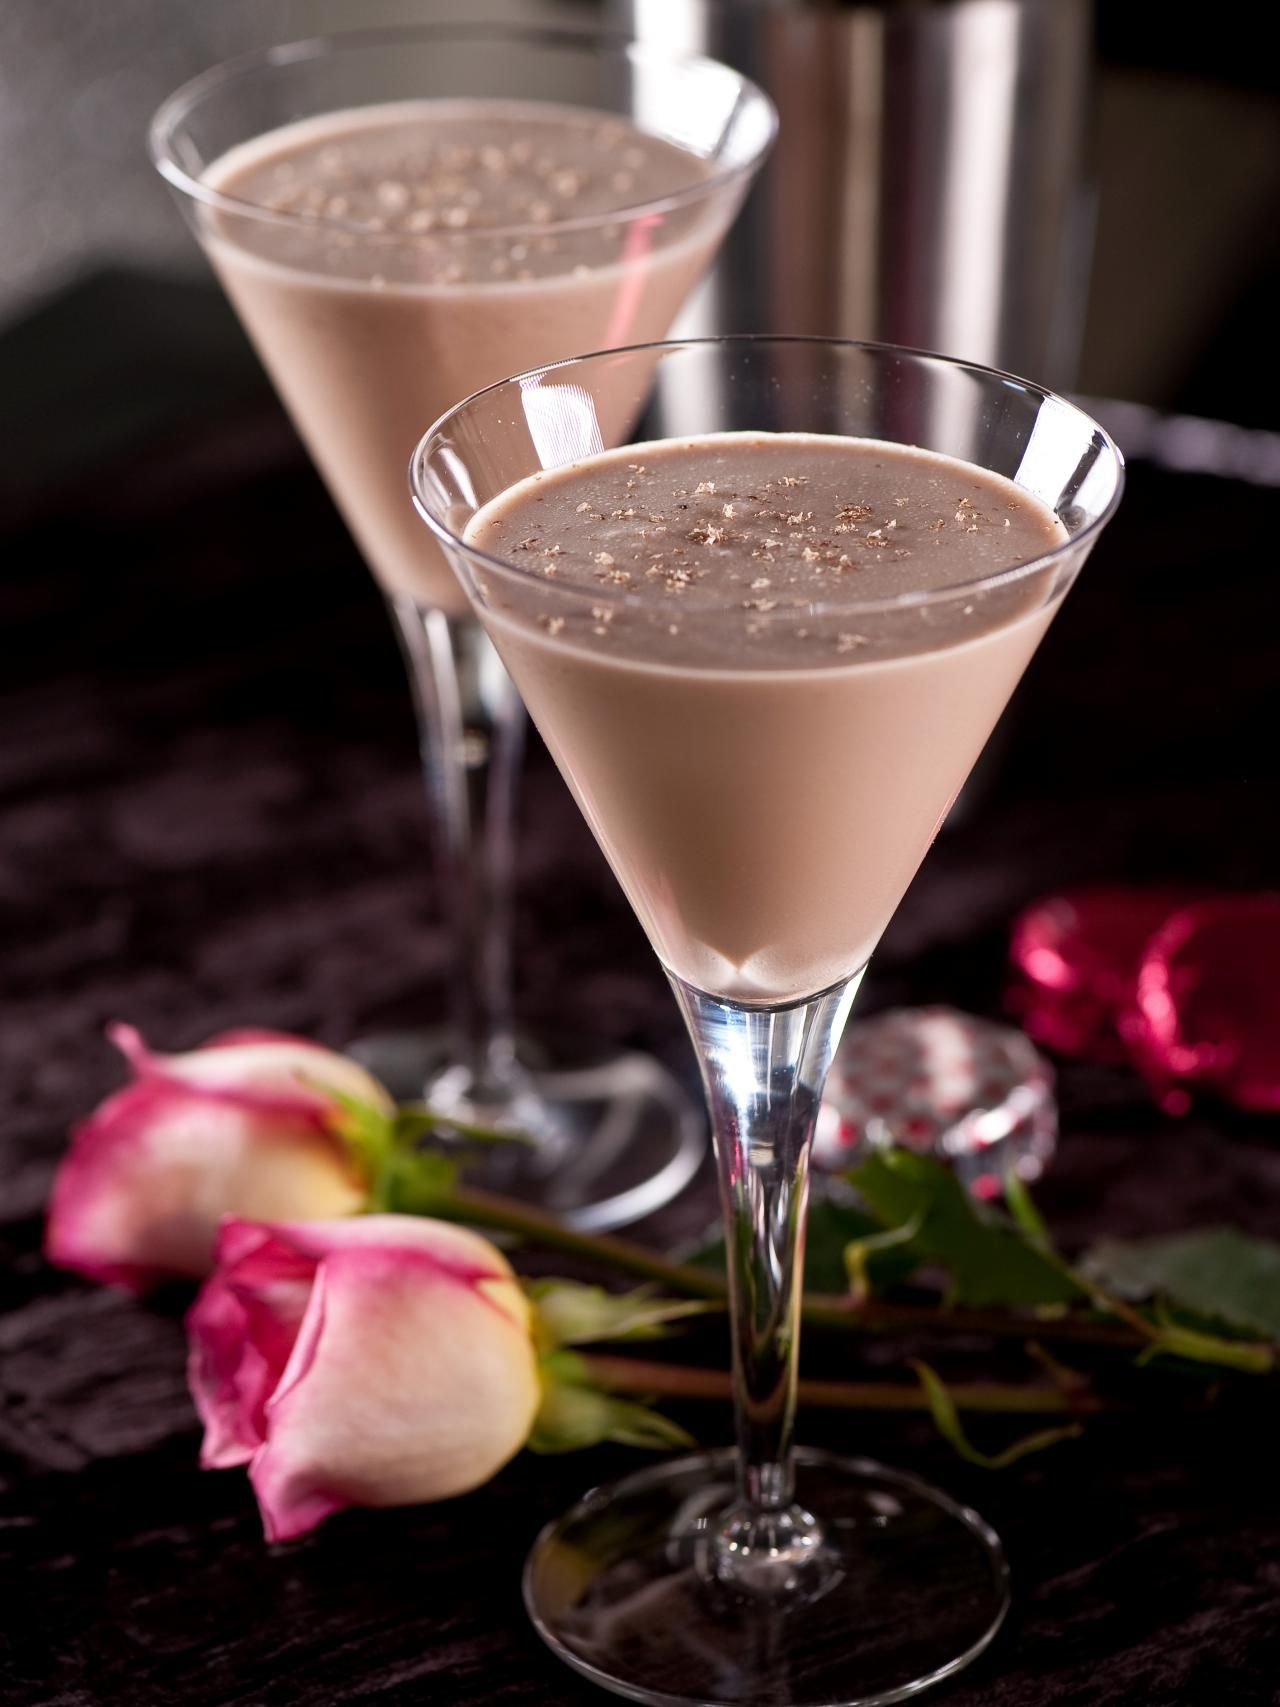 The entertaining experts at HGTV.com have come up with some delicious and romantic cocktails to try this Valentine's Day.